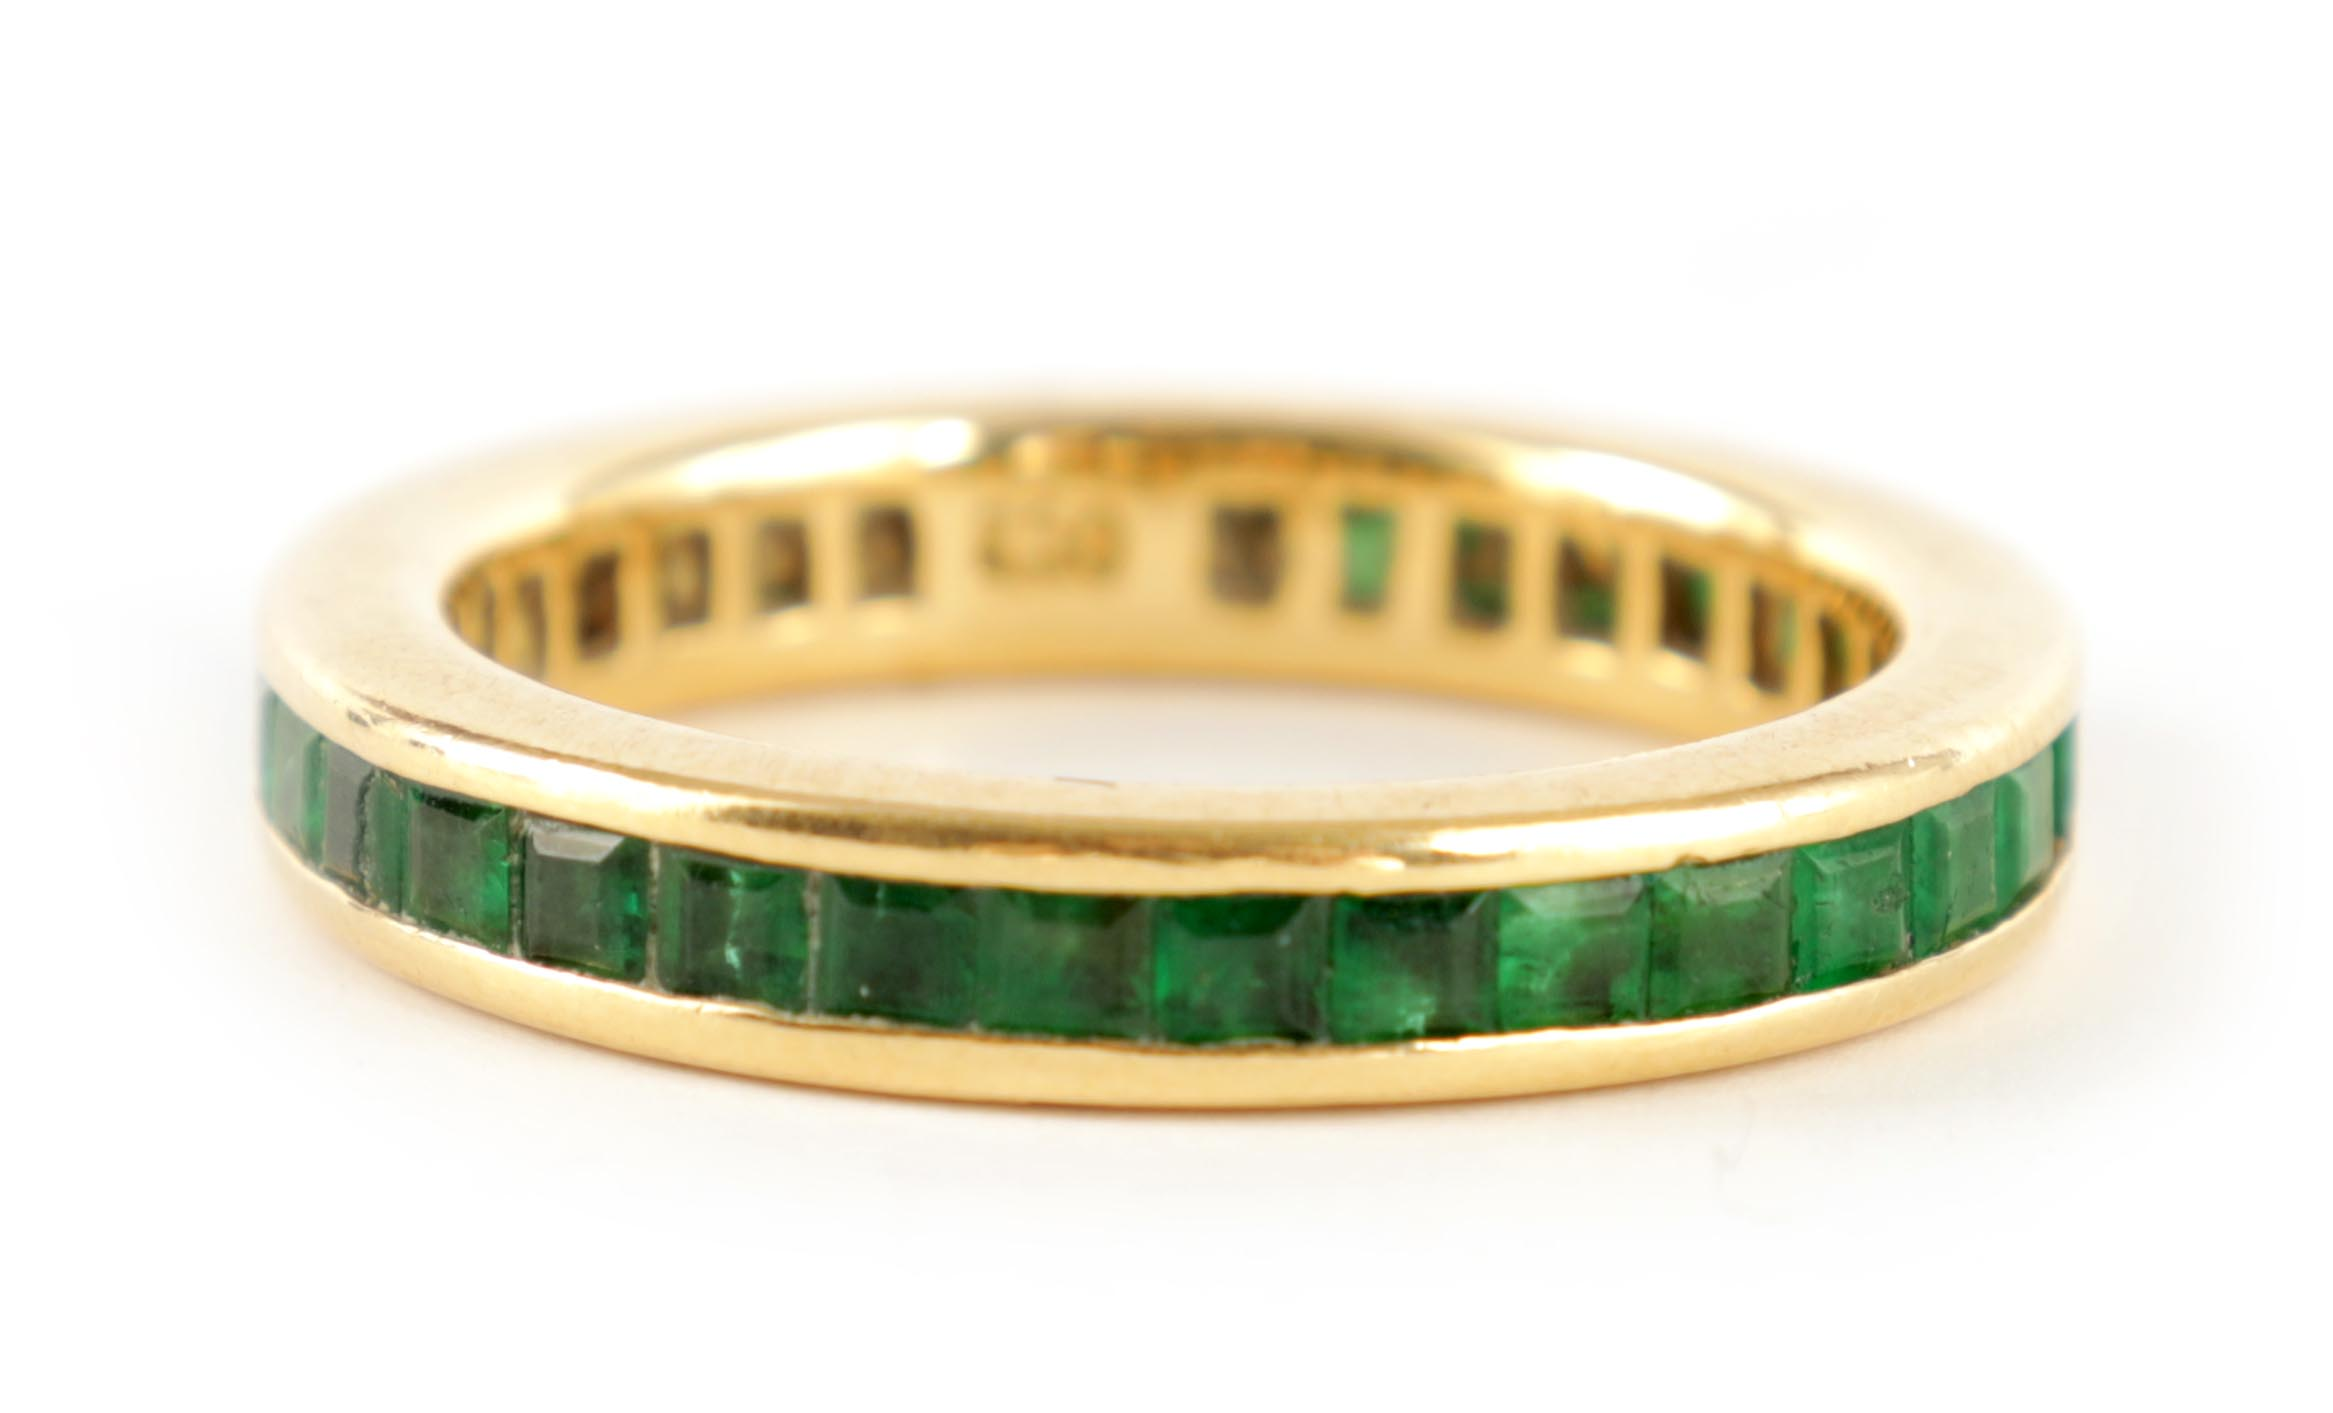 AN 18CT GOLD AND EMERALD ETERNITY RING set all round with square-cut stones, app. weight 4.5g